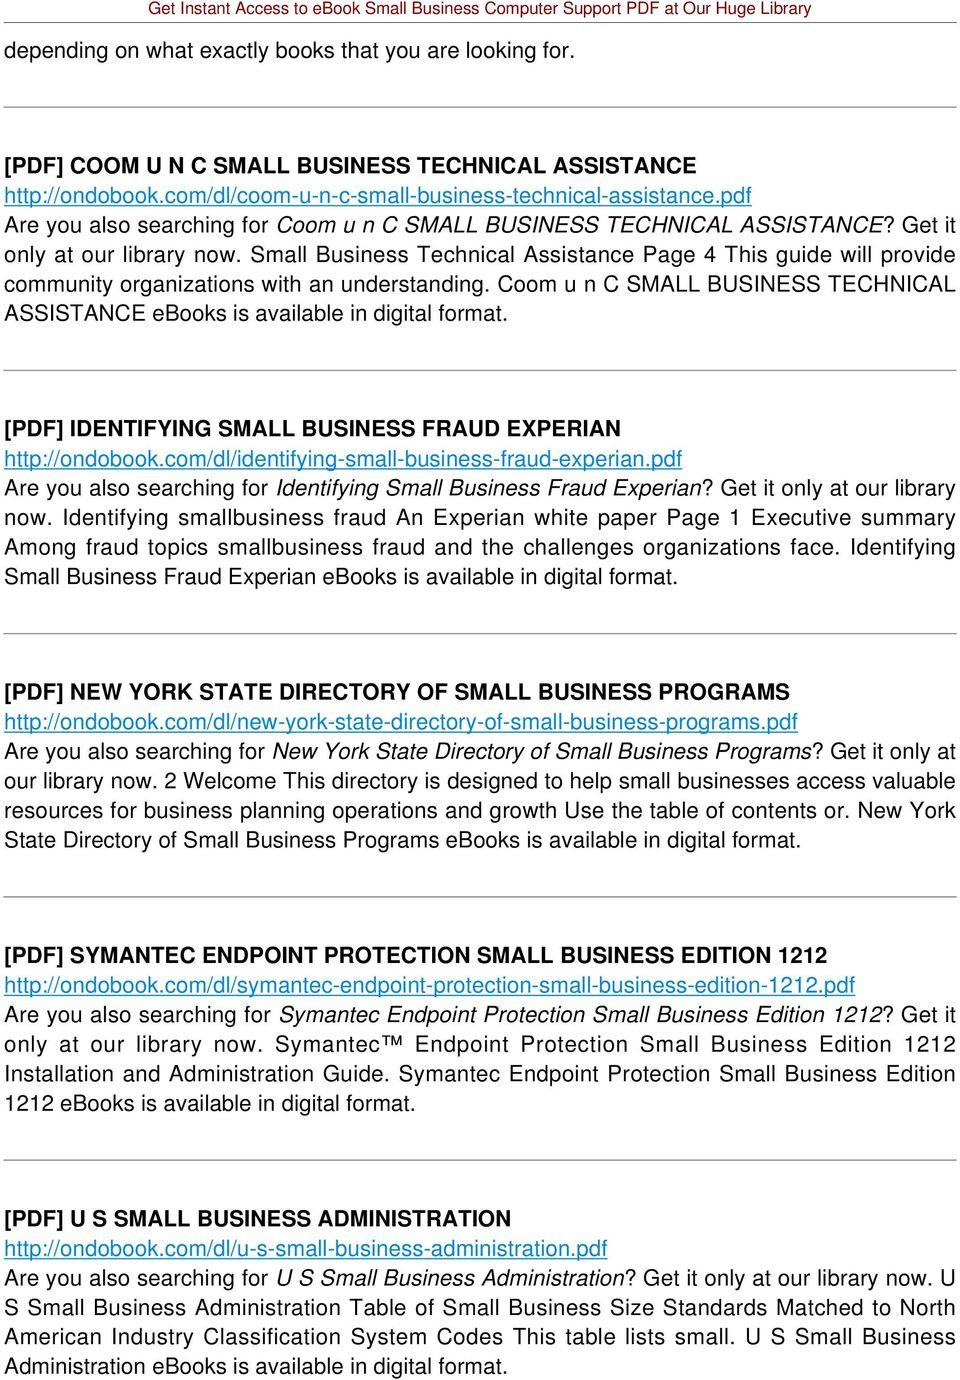 Small Business Technical Assistance Page 4 This guide will provide community organizations with an understanding. Coom u n C SMALL BUSINESS TECHNICAL ASSISTANCE ebooks is available in digital format.